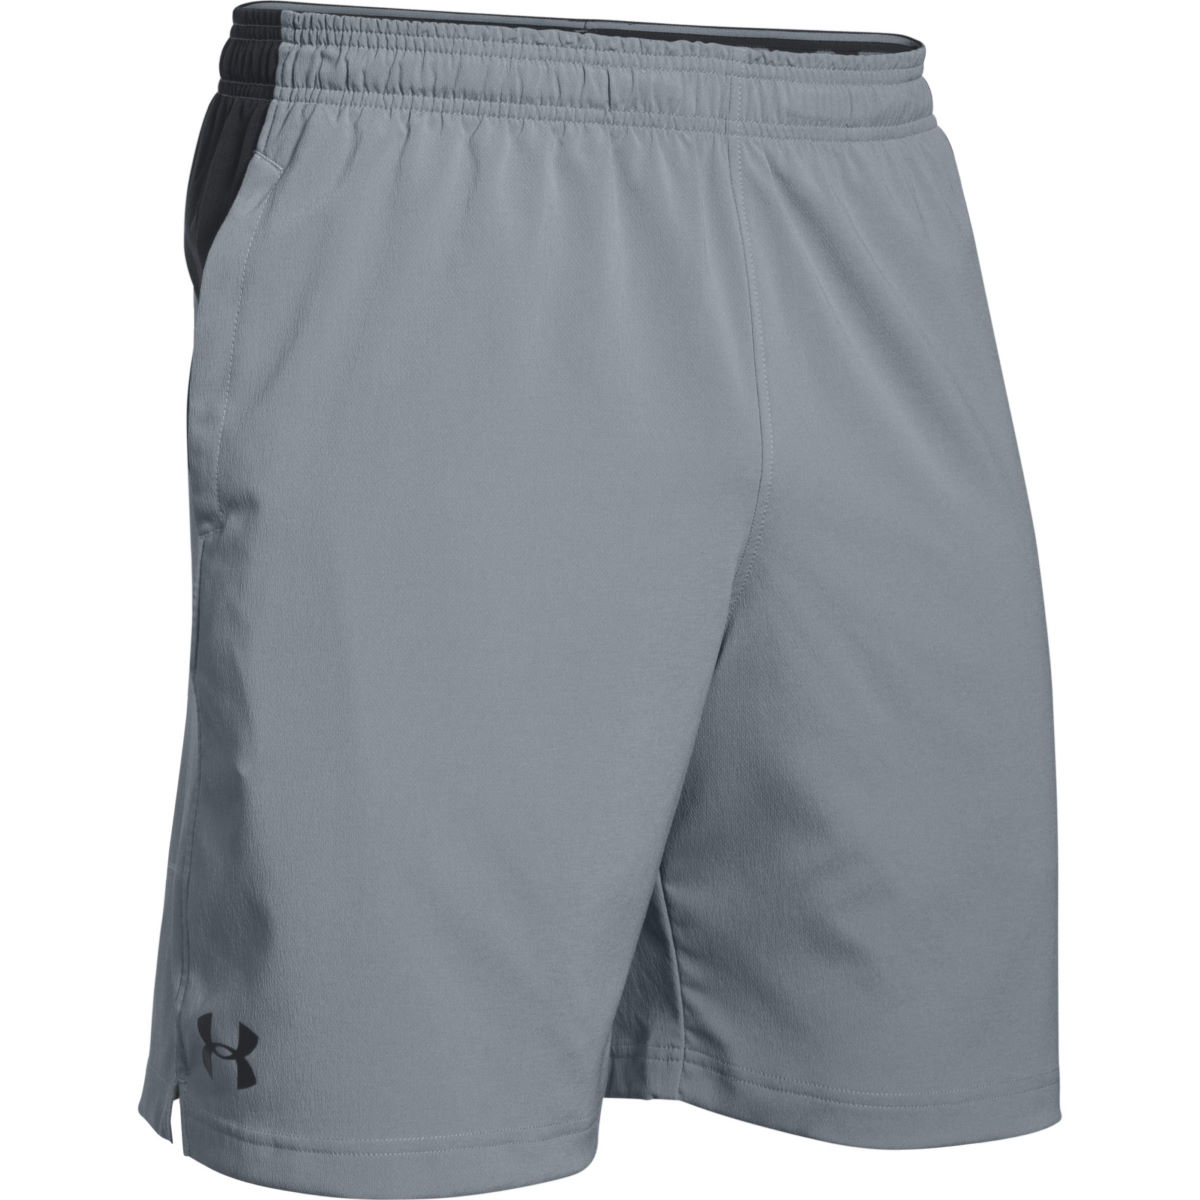 Under Armour HIIT Woven Short (SS16) - Extra Large Steel